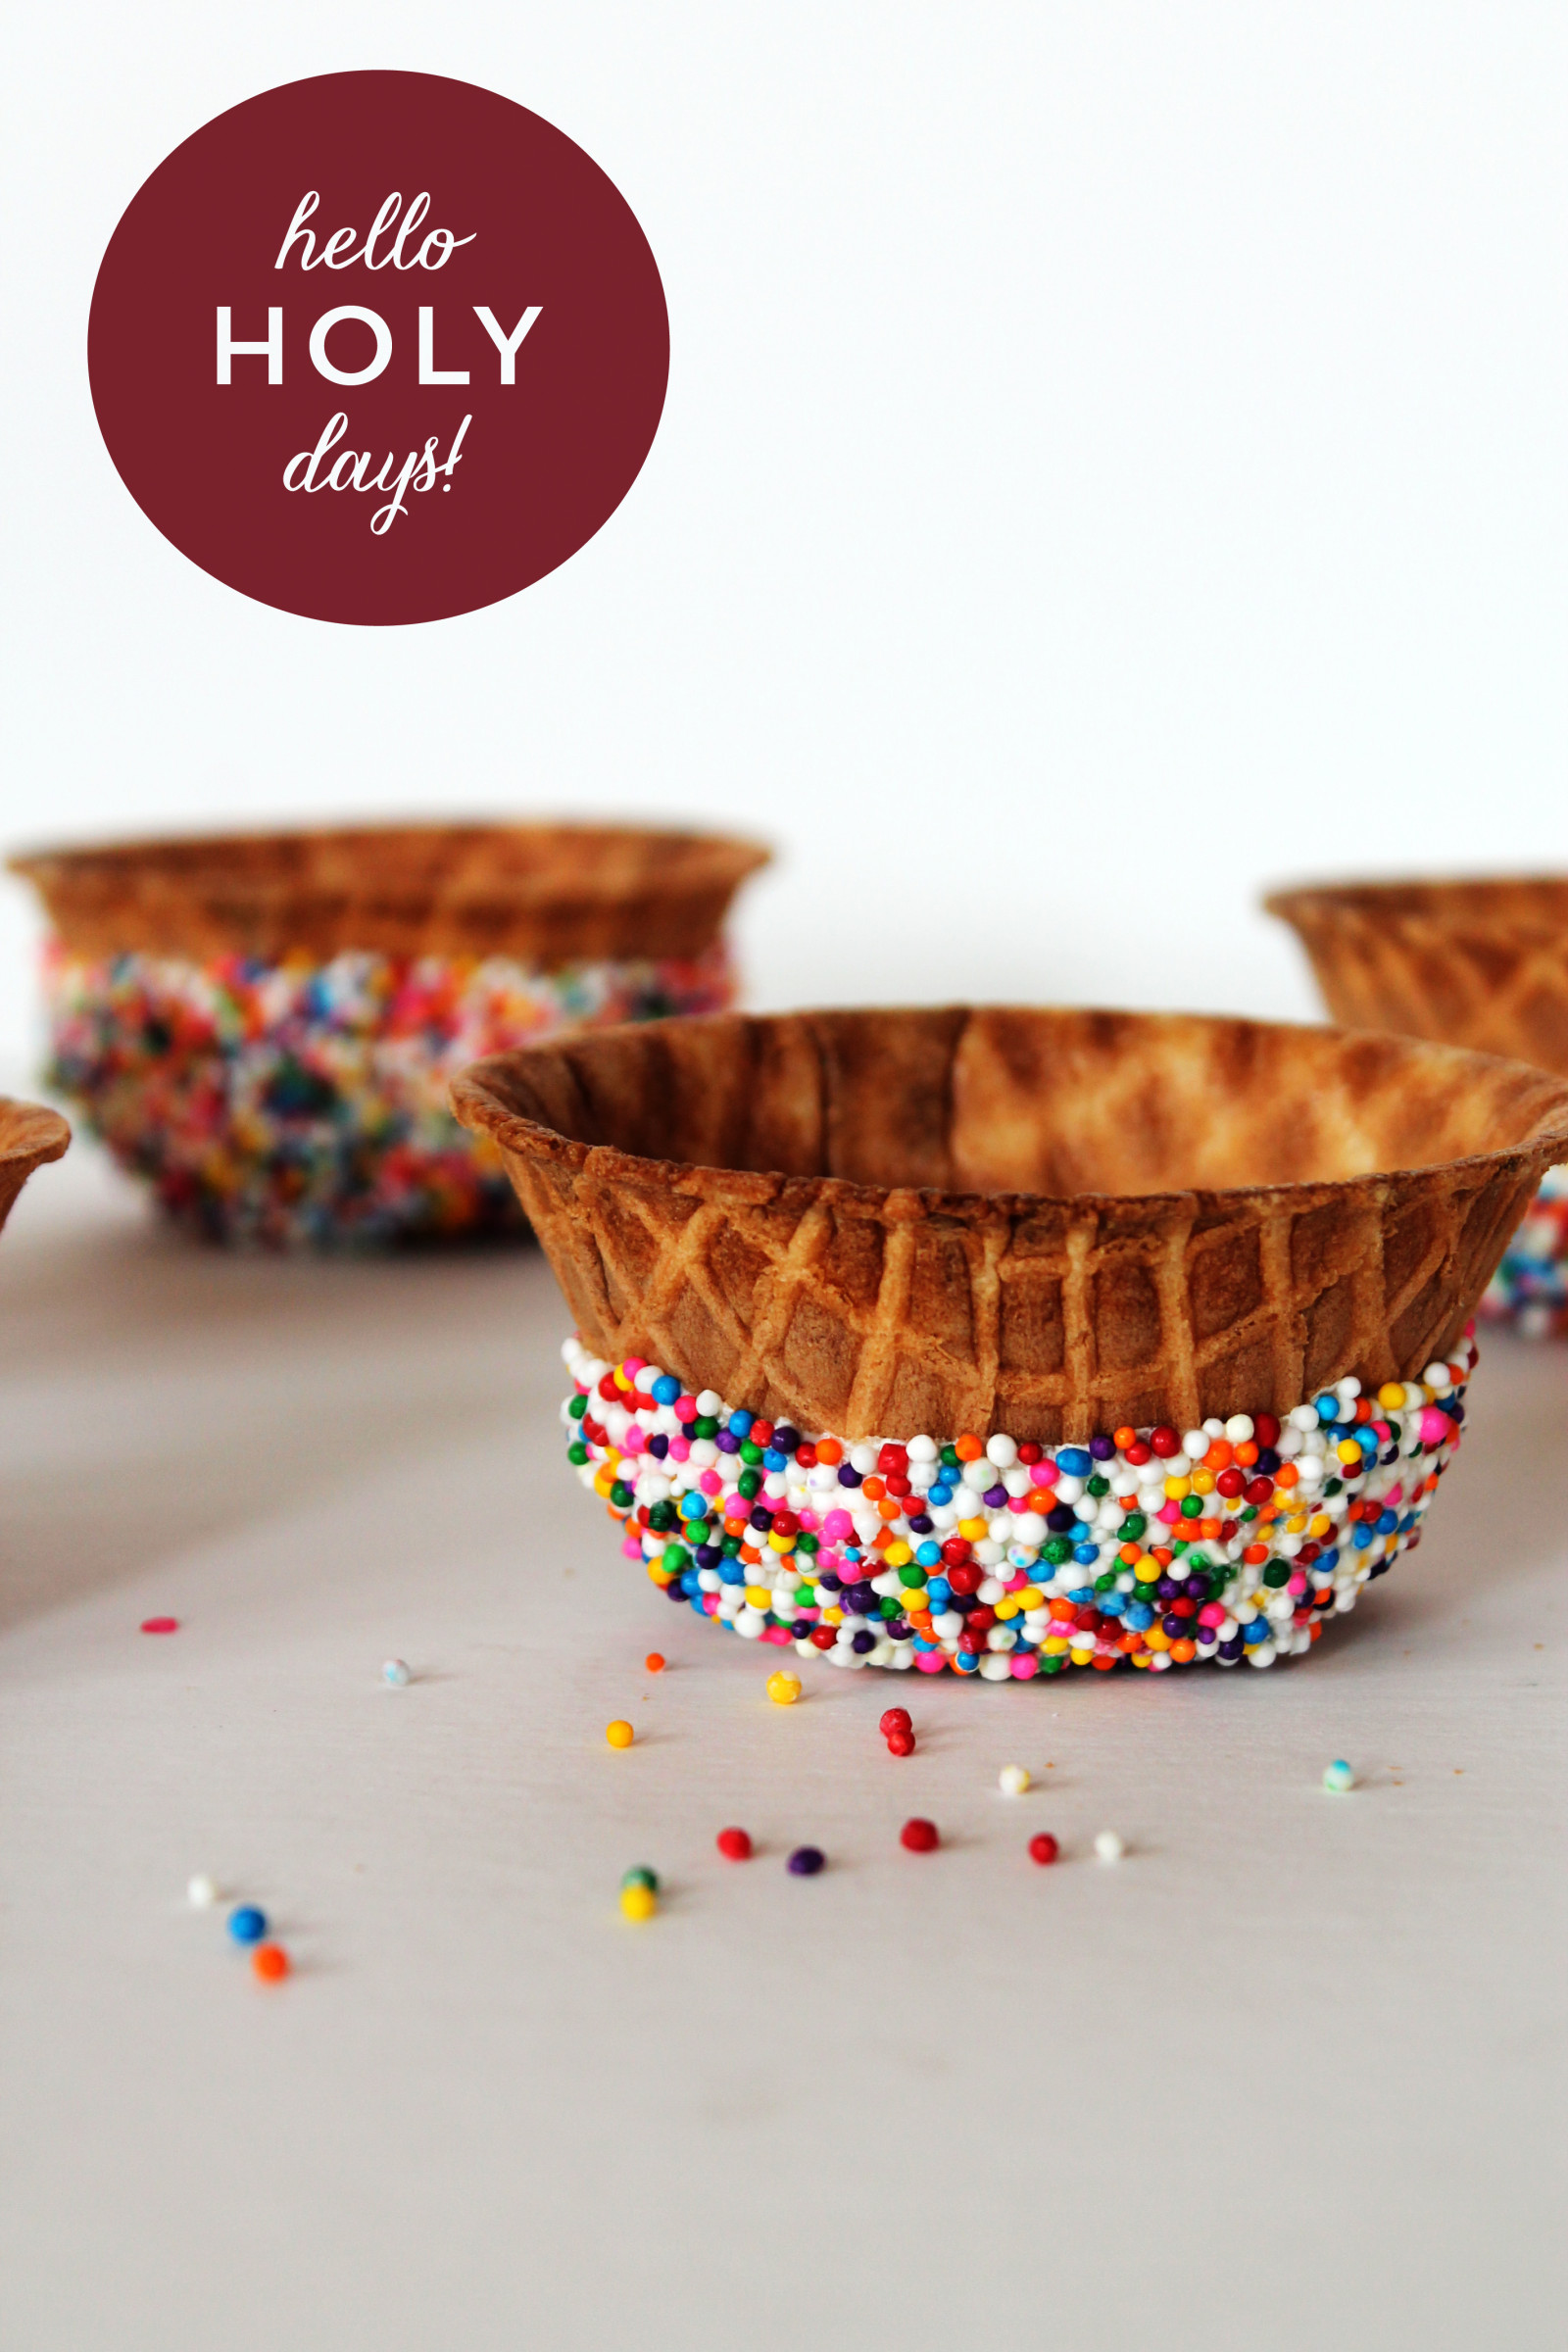 fun ice cream bowls for ramadan